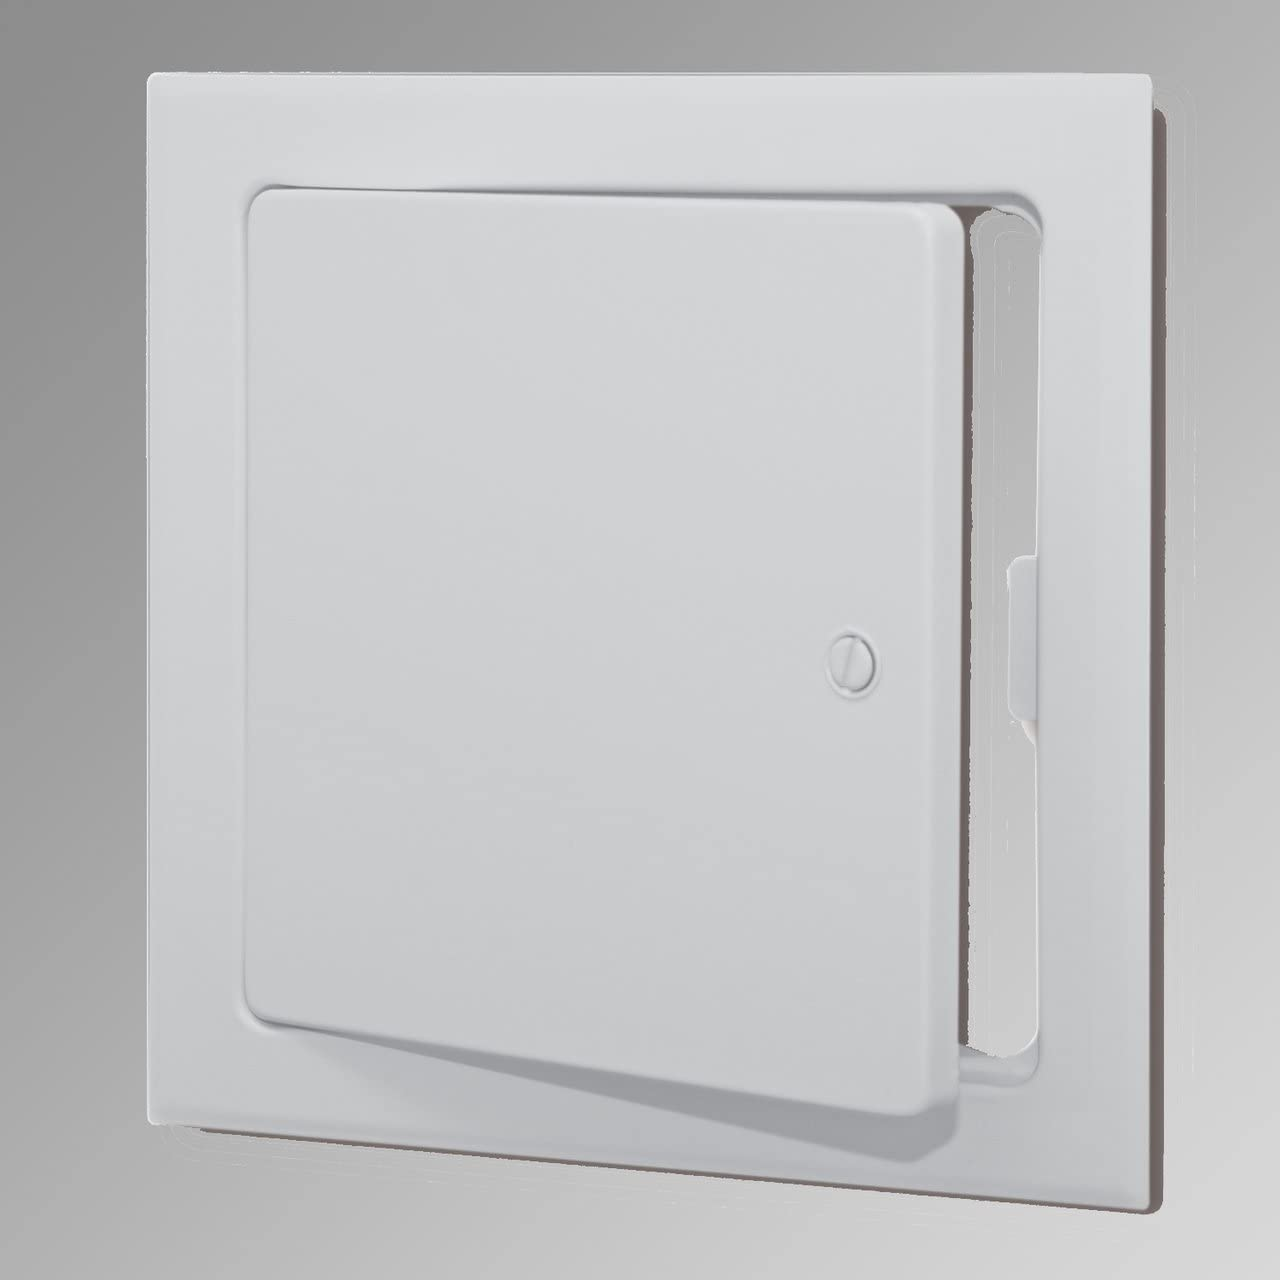 Acudor UF-5500 Universal Flush Access 24-3 Door 8 Popular brand in the world Inch Opening large release sale x